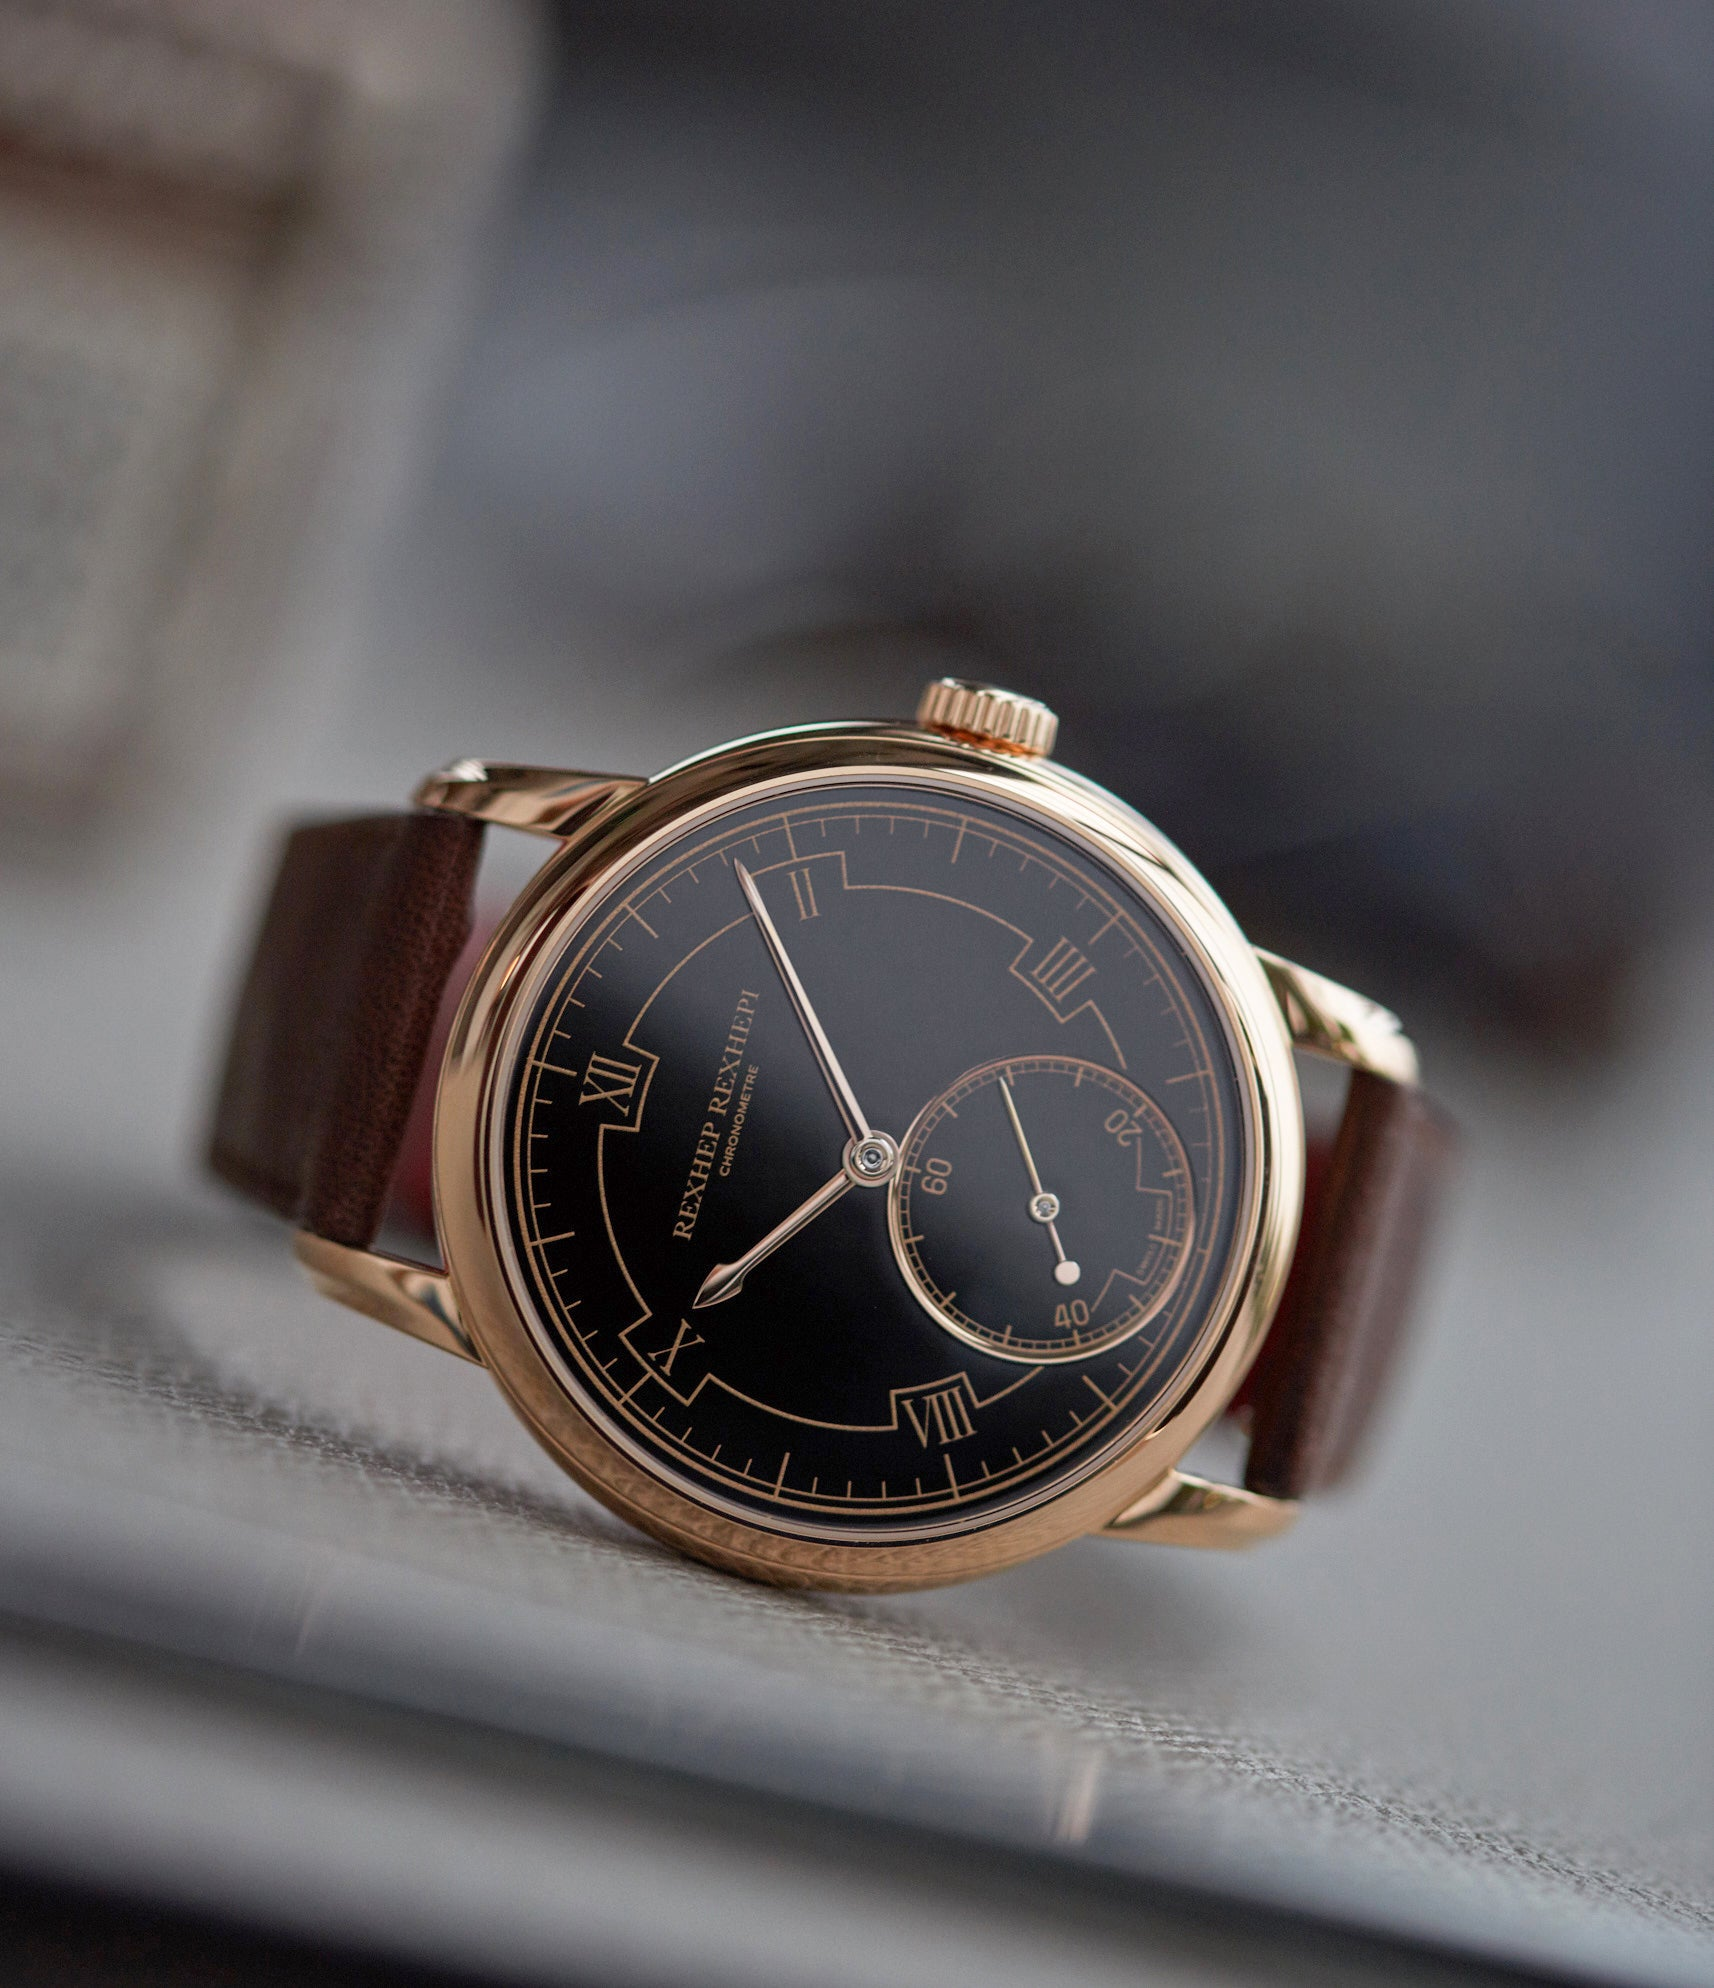 rare AkriviA Rexhep Rexhepi Chronometre Contemporain rose gold black Grand Feu enamel sector dial time-only dress watch A Collected Man London